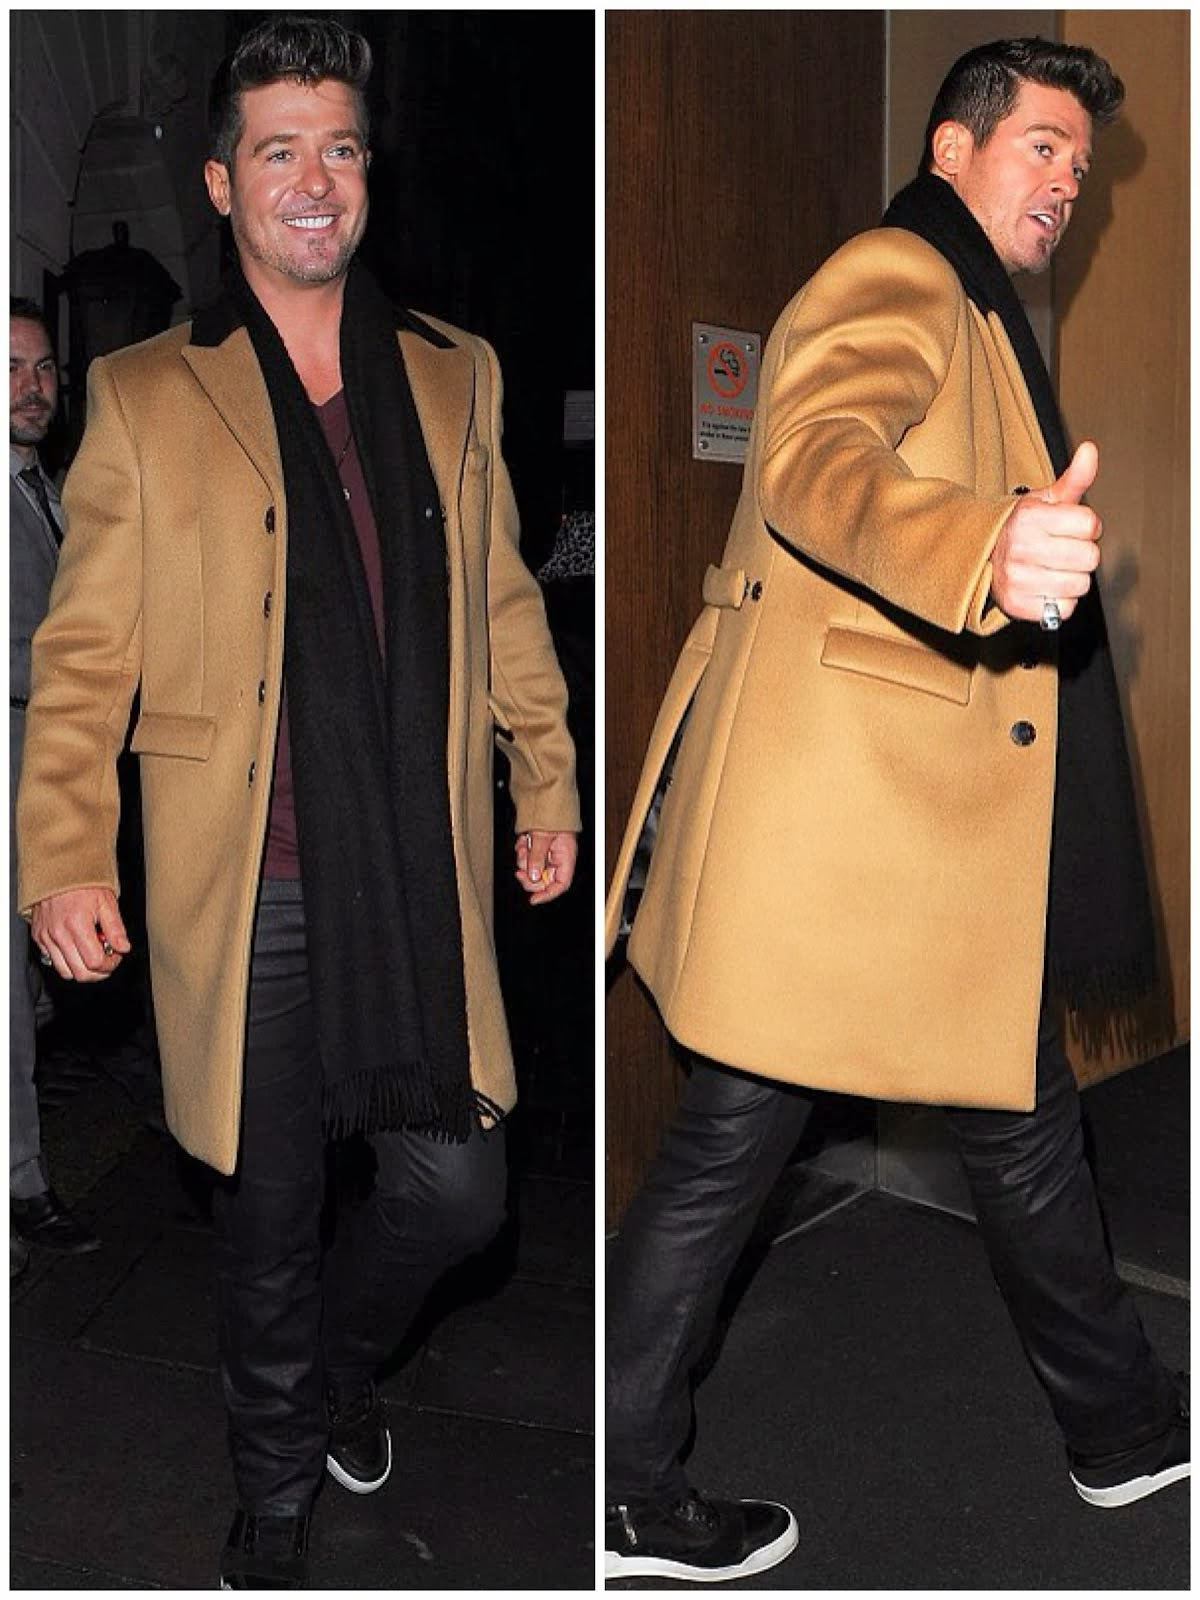 00O00 Menswear Blog: Robin Thicke in Burberry Prorsum Slim-Fit Bonded Cashmere-Blend Overcoat - Nobu Berkeley, London November 2013